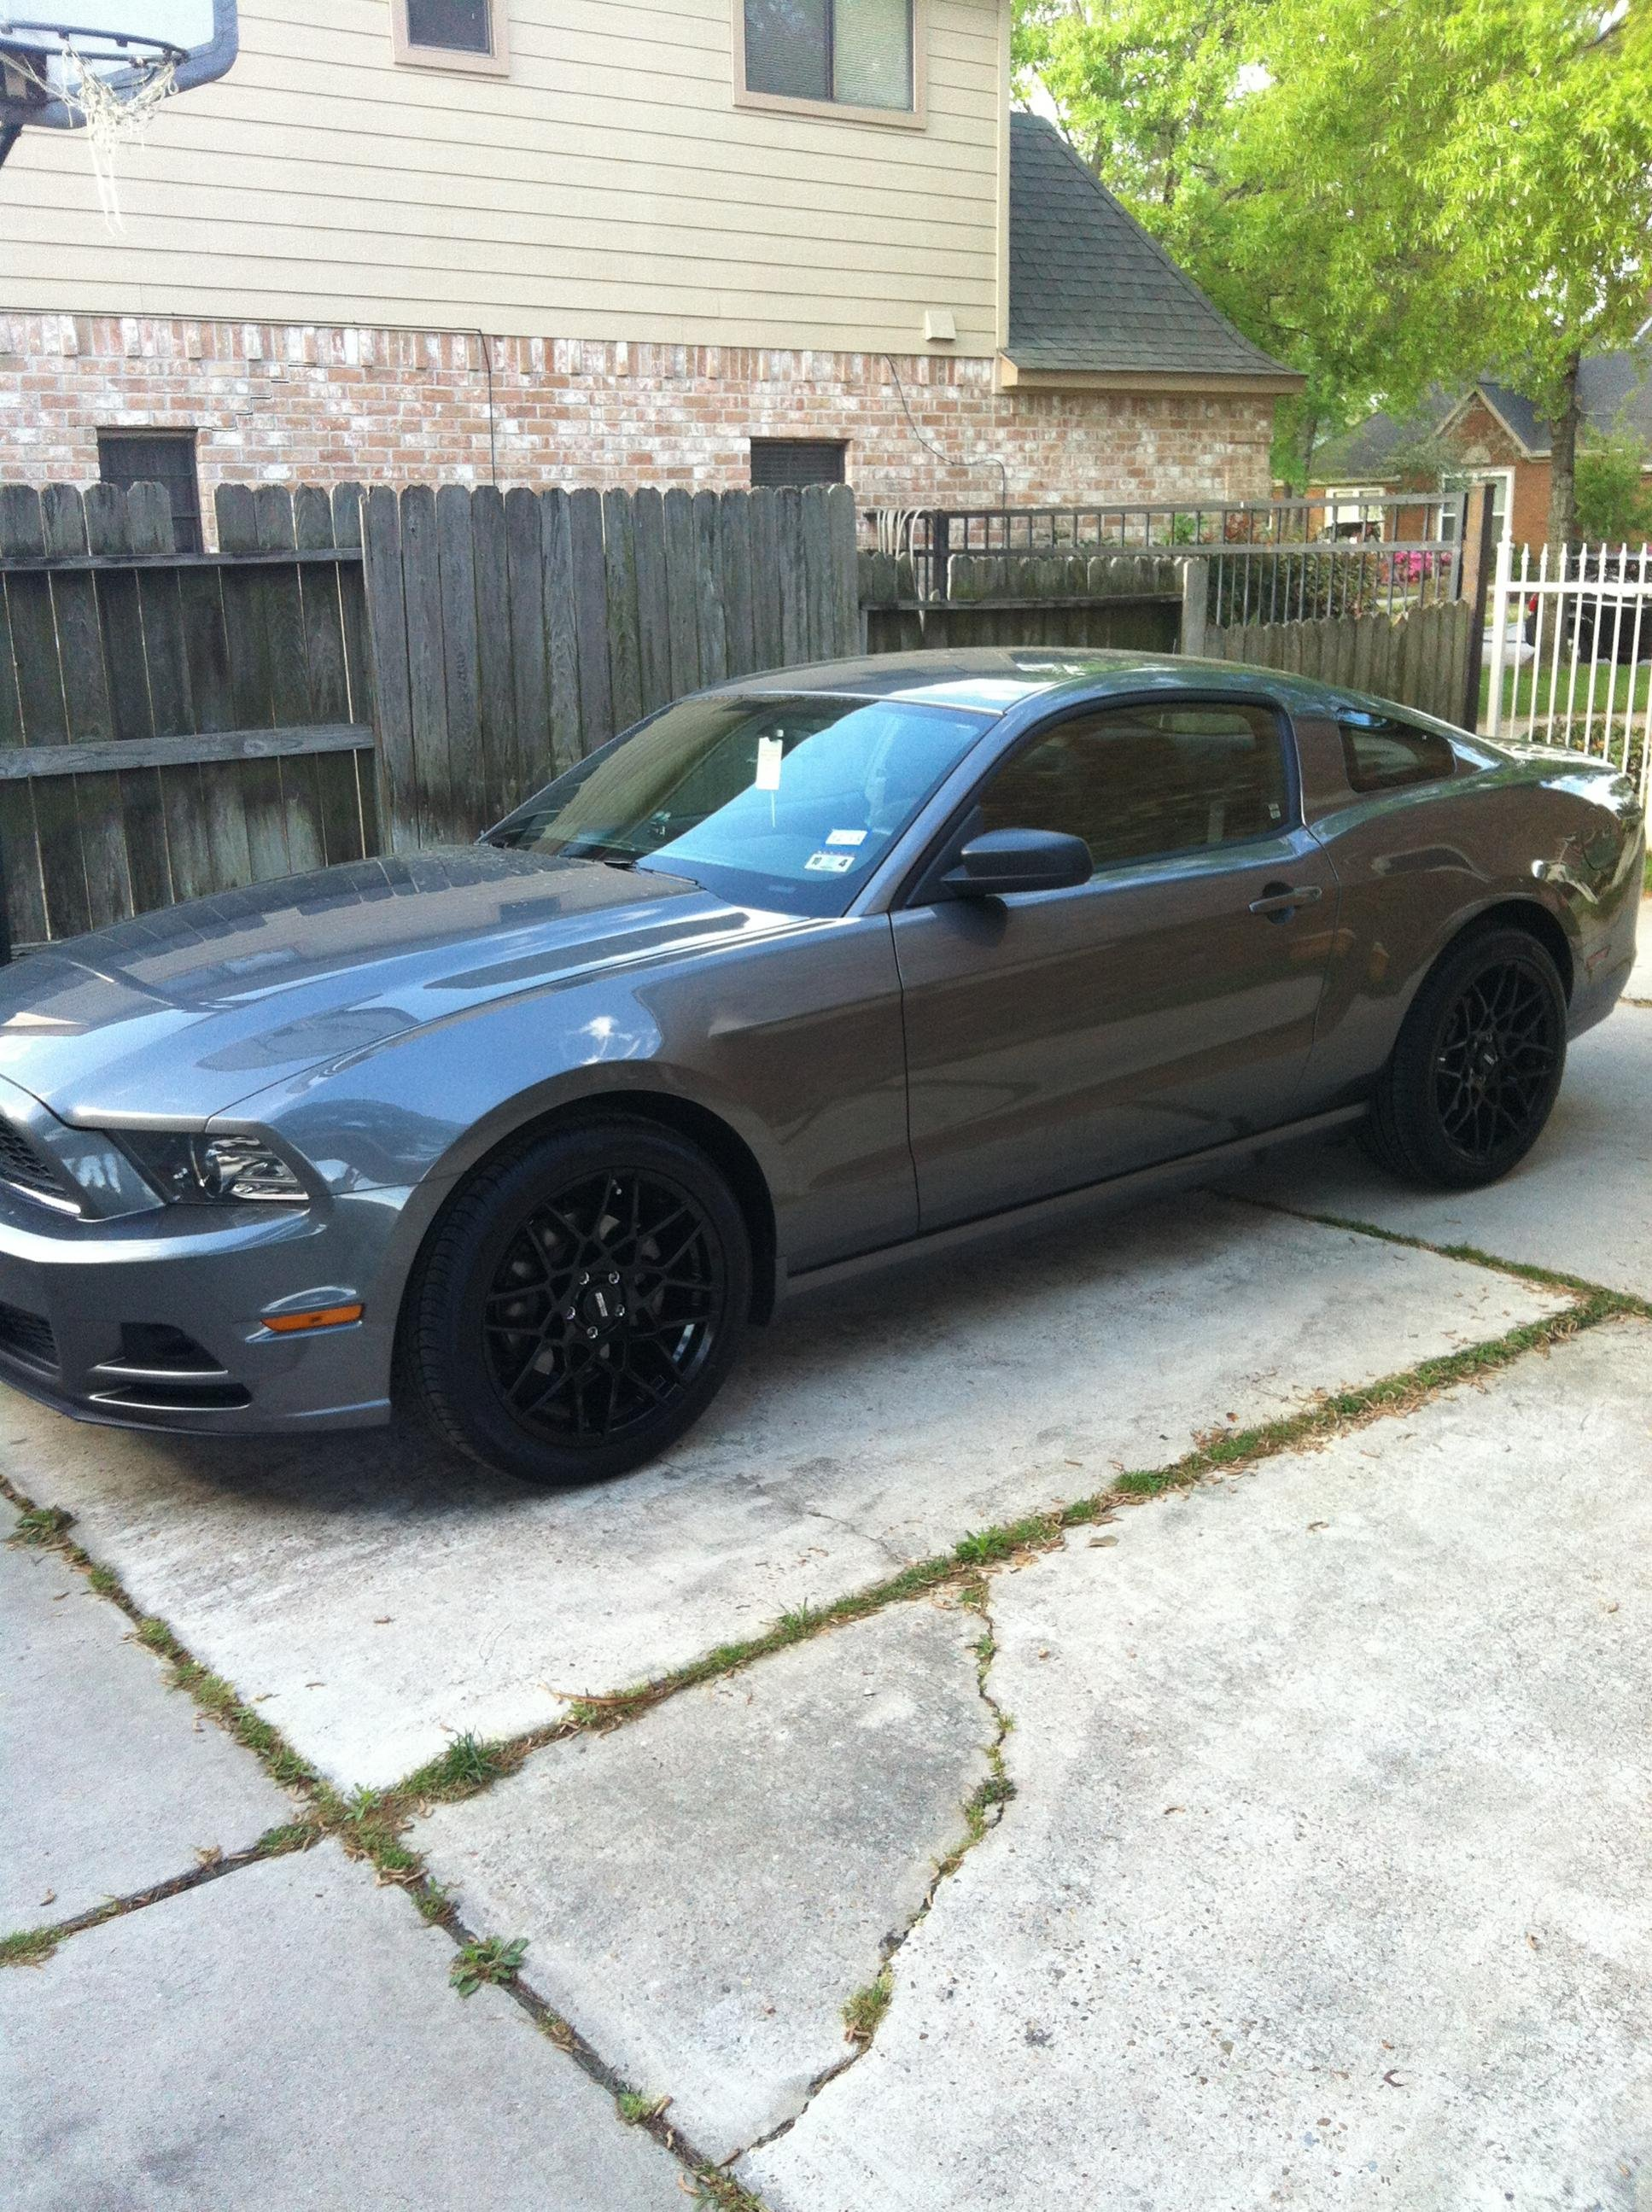 2013 gt500 wheels and tires from american muscle photo 1 jpg